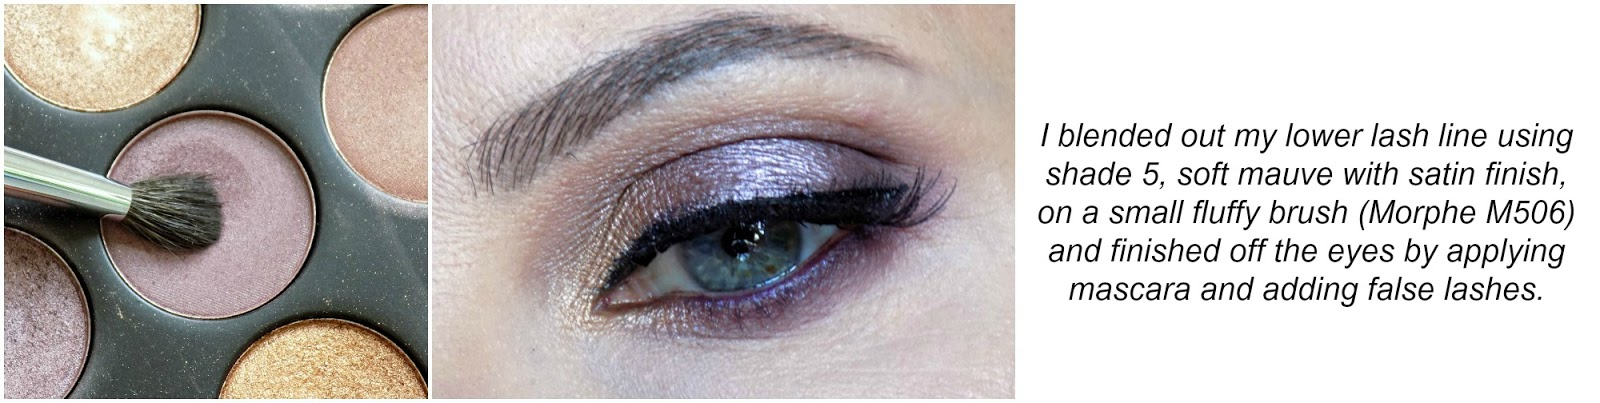 soft mauve eye look tutorial feat. Morphe Brushes 35T palette